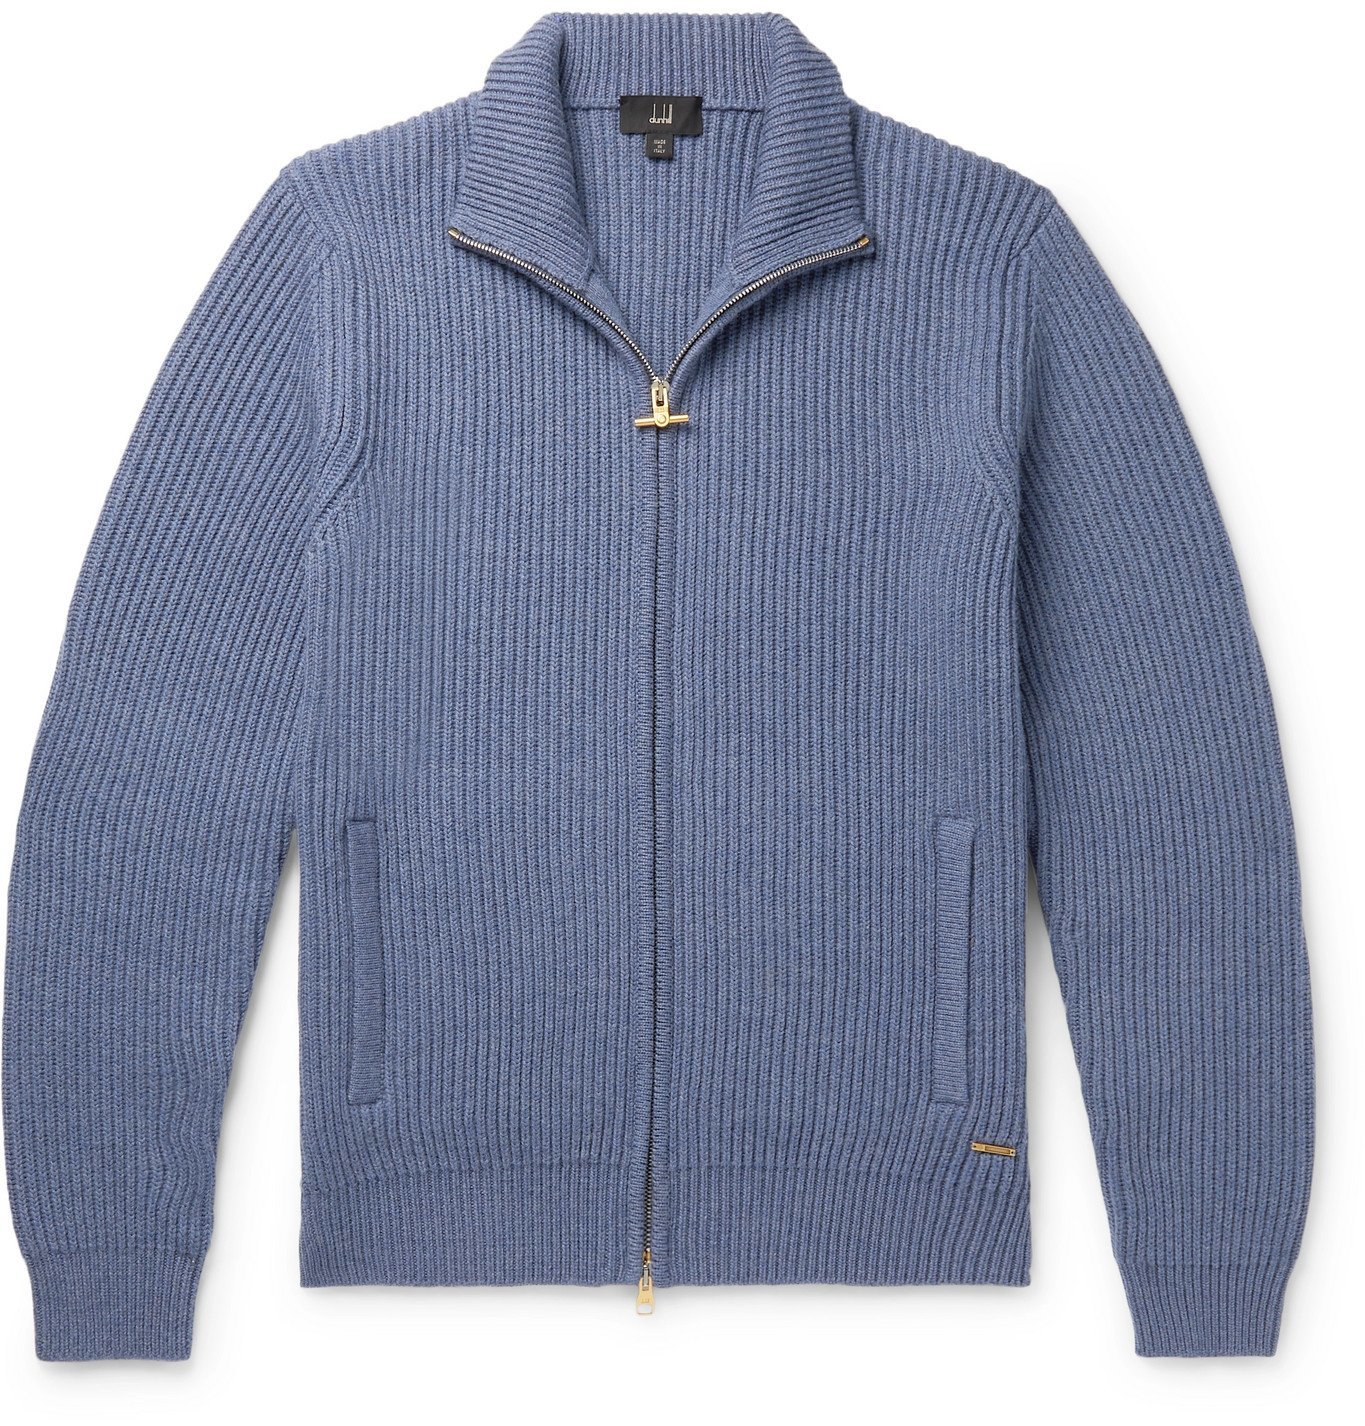 DUNHILL - Leather-Trimmed Ribbed Wool Zip-Up Cardigan - Blue